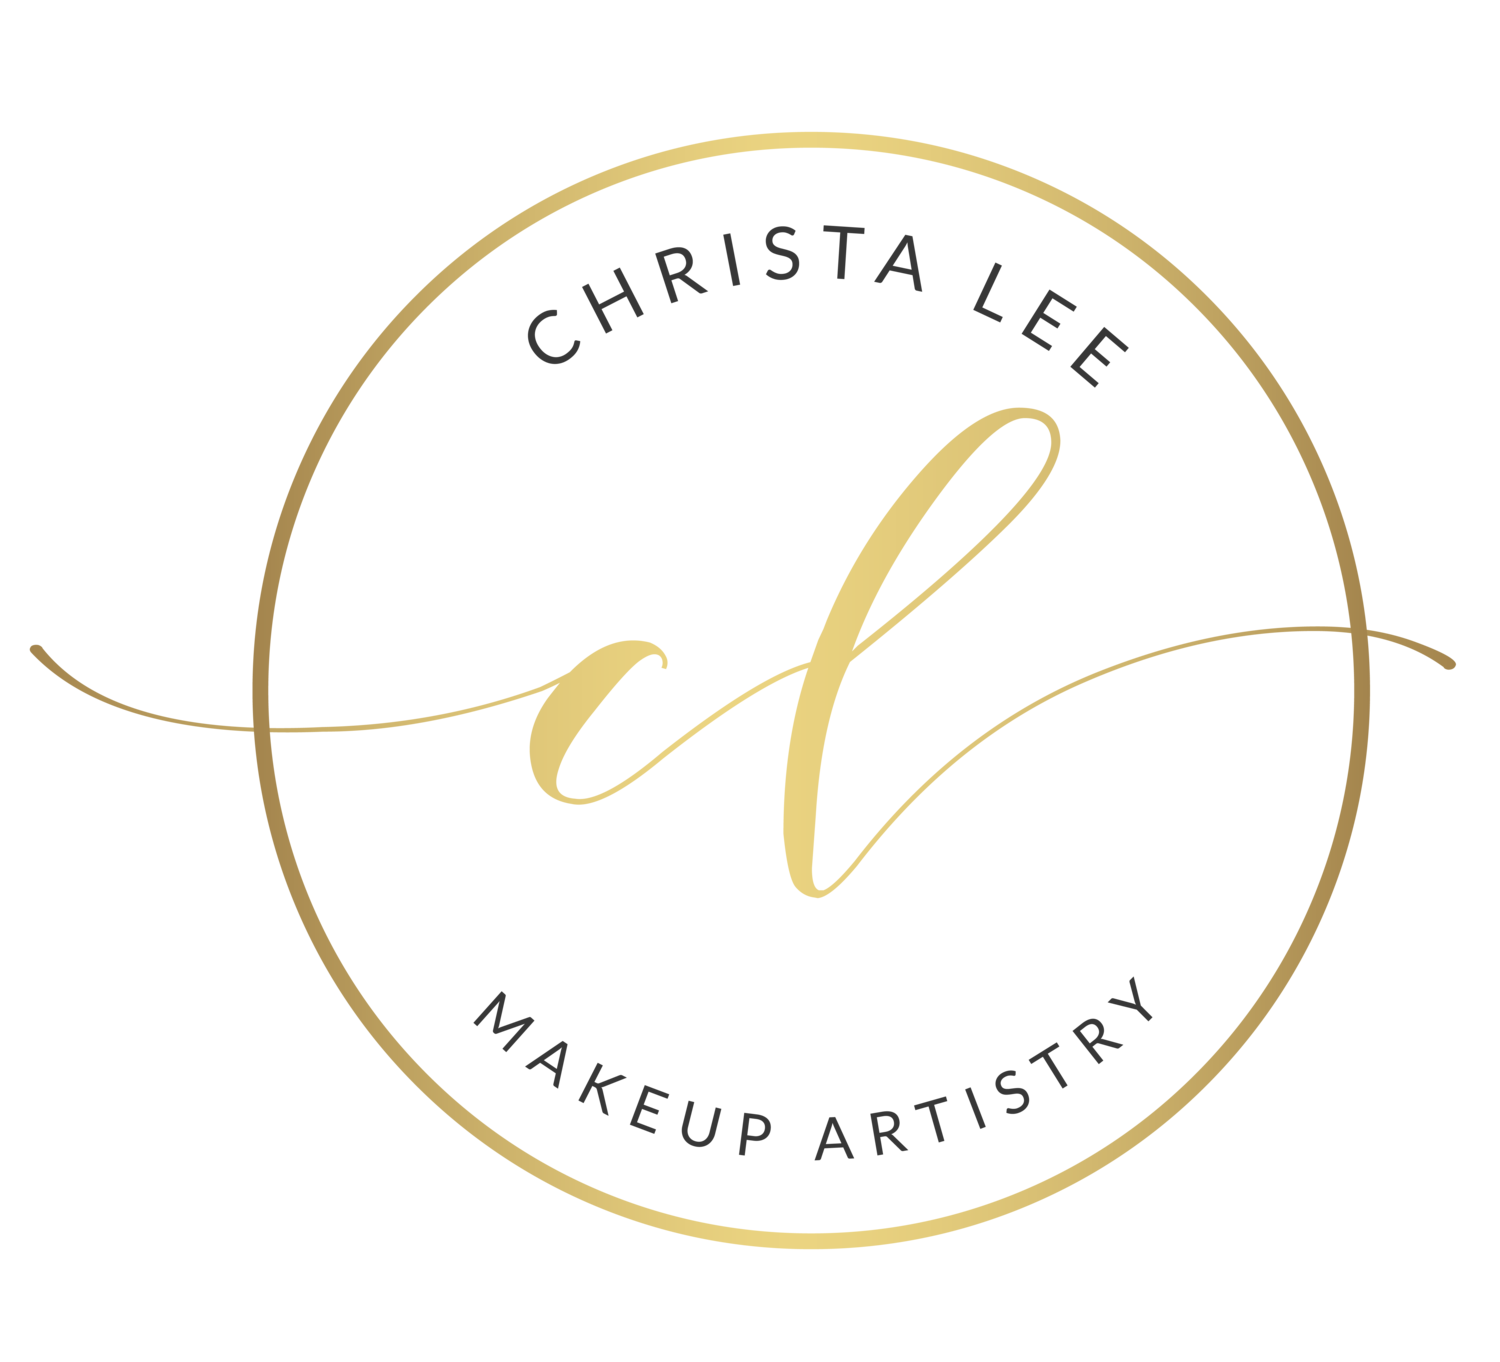 Christa Lee Makeup Artistry